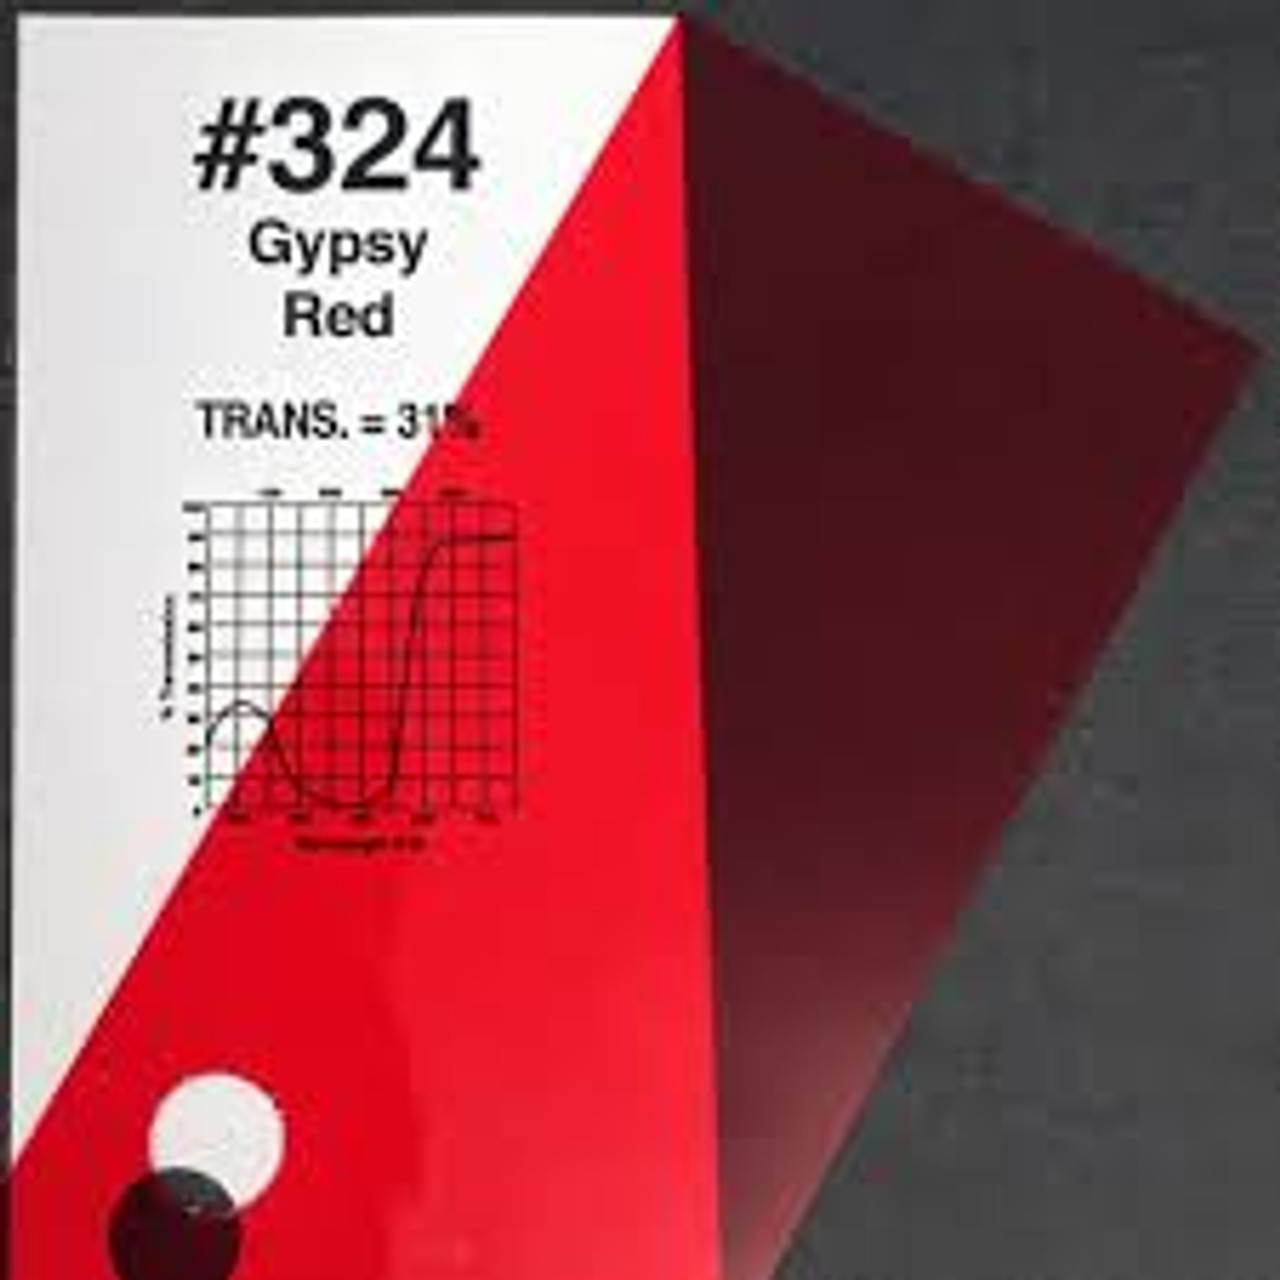 #0324 Rosco Gels Roscolux Gypsy Red, 20x24""